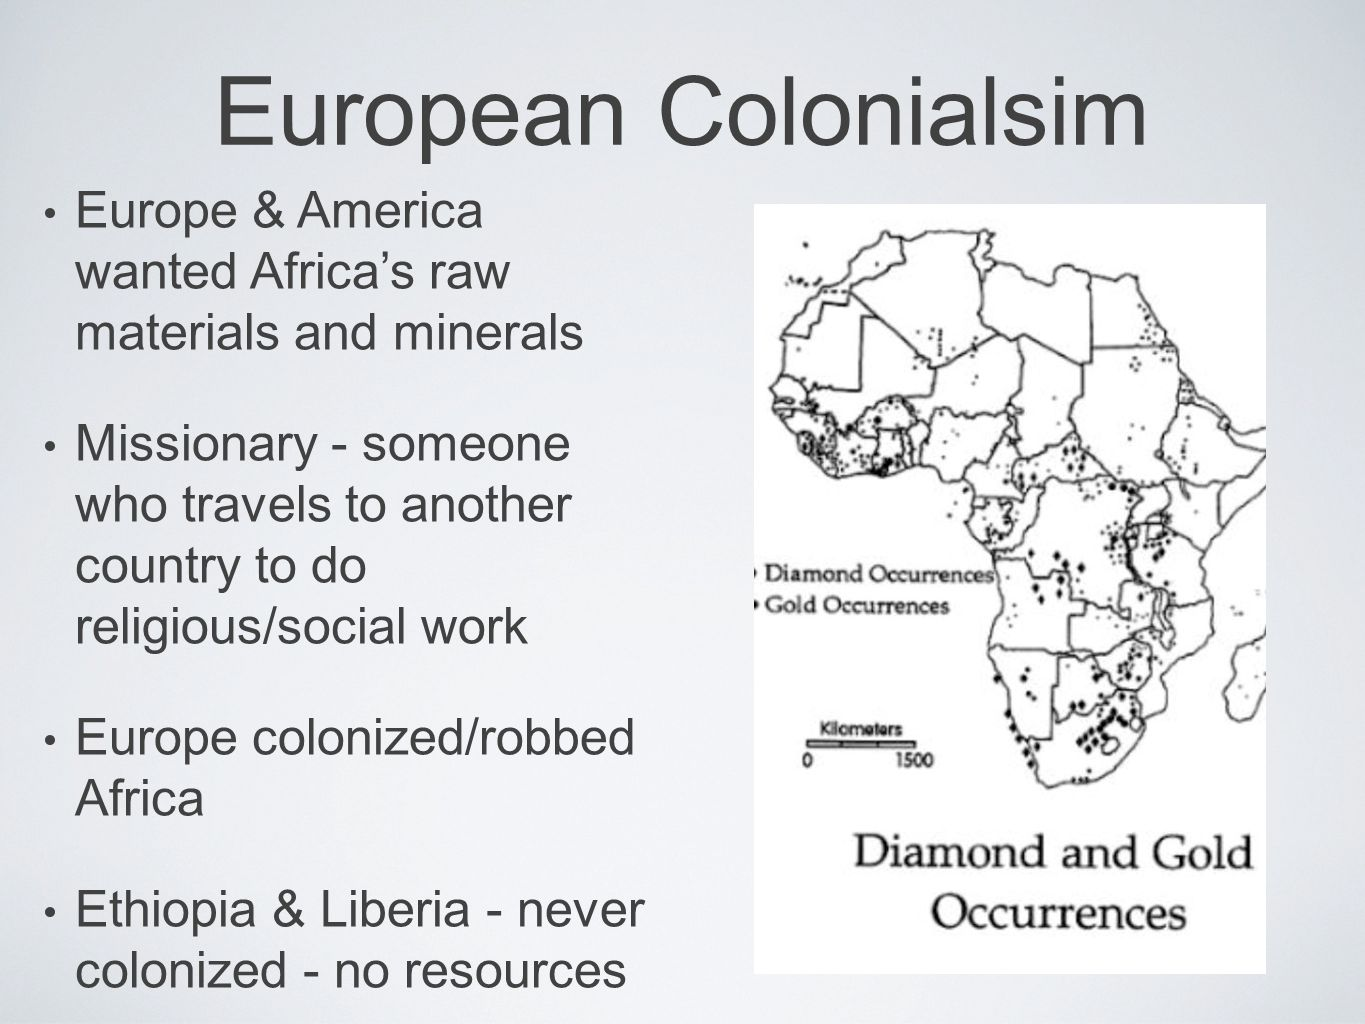 the impact of european colonization on african slaves University of new york in prague the impact of european colonialism on indigenous people in africa elizaveta guzhavina third world: ethnic conflict in historical and cultural perspectives jan záhořík, phd 29th of april 2013 the african continent has always been the land of mystery for europeans.